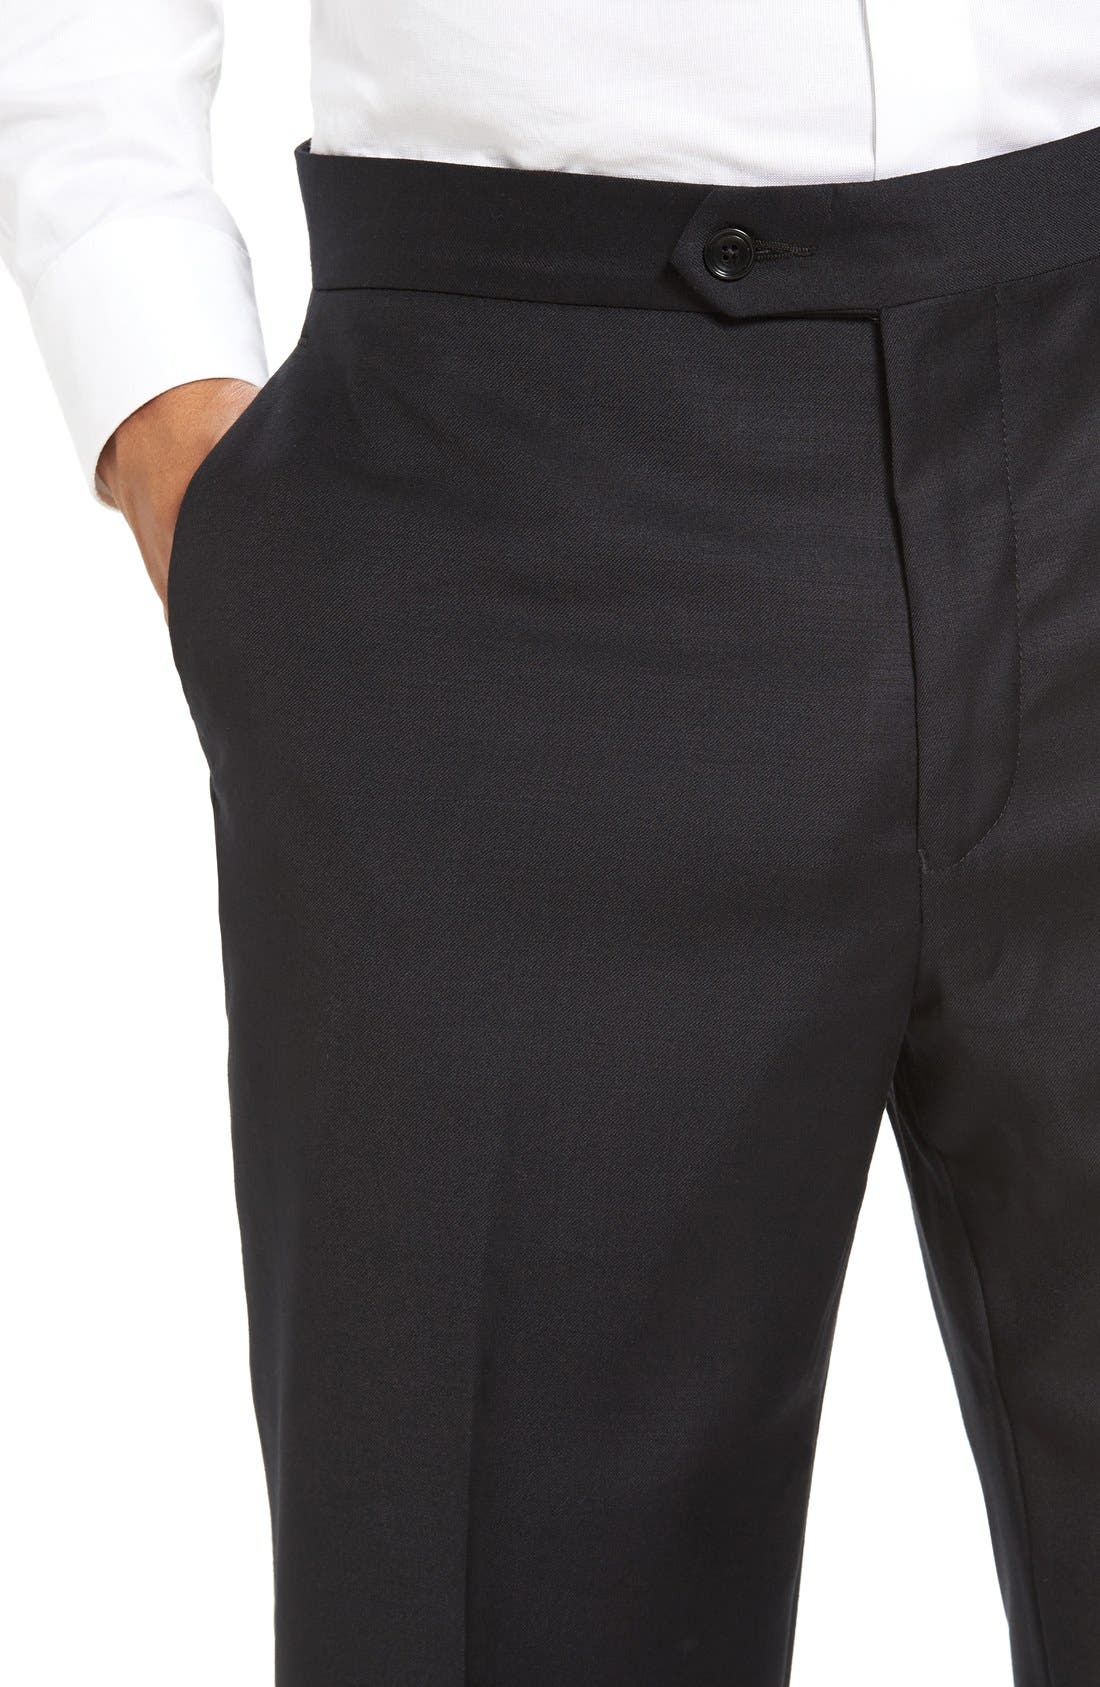 Dagger Flat Front Formal Wool Trousers,                             Alternate thumbnail 4, color,                             001